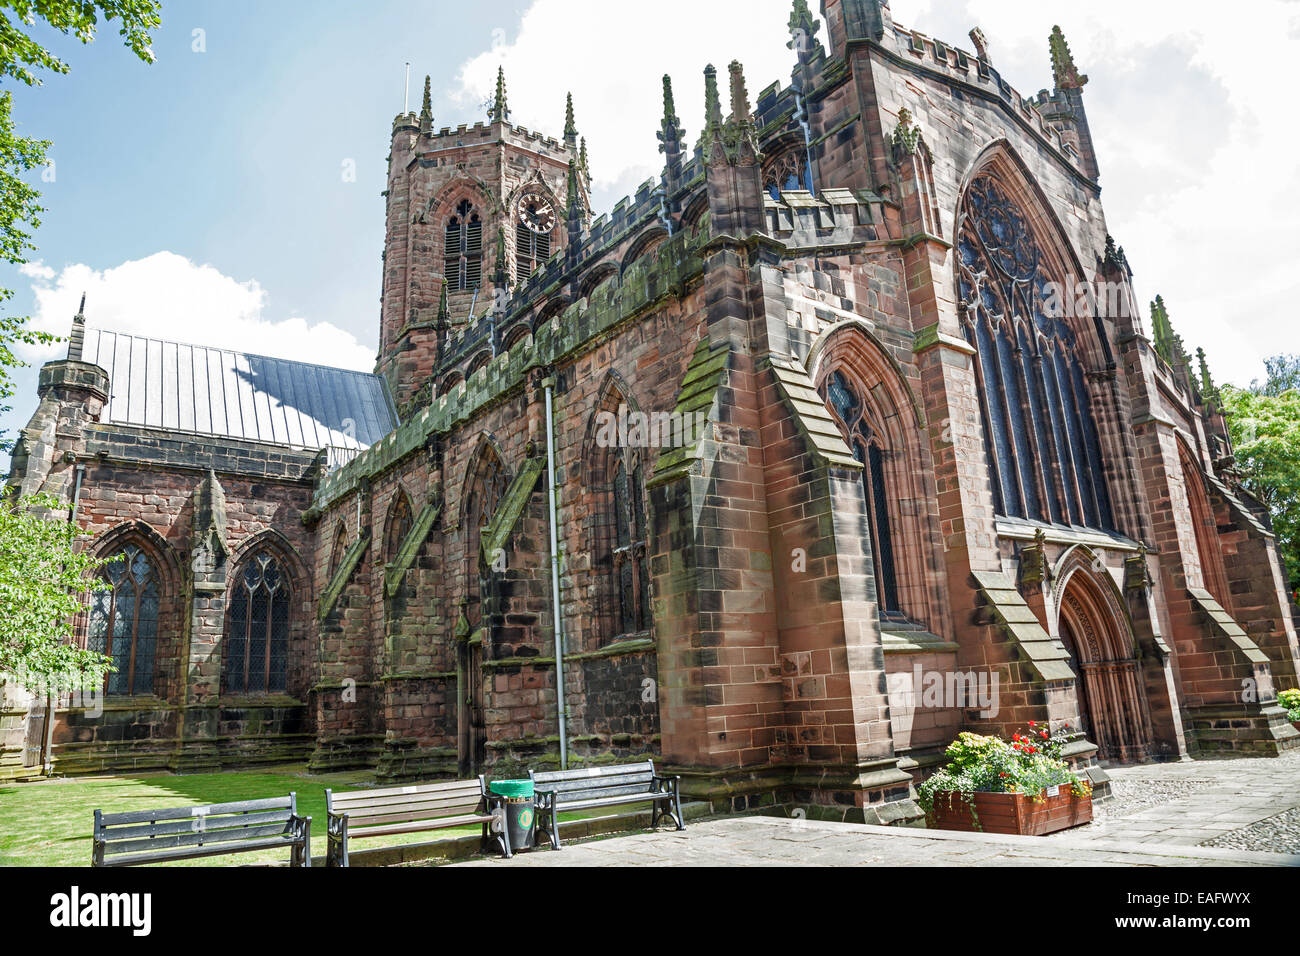 St Mary's Church Nantwich Cheshire England UK - Stock Image